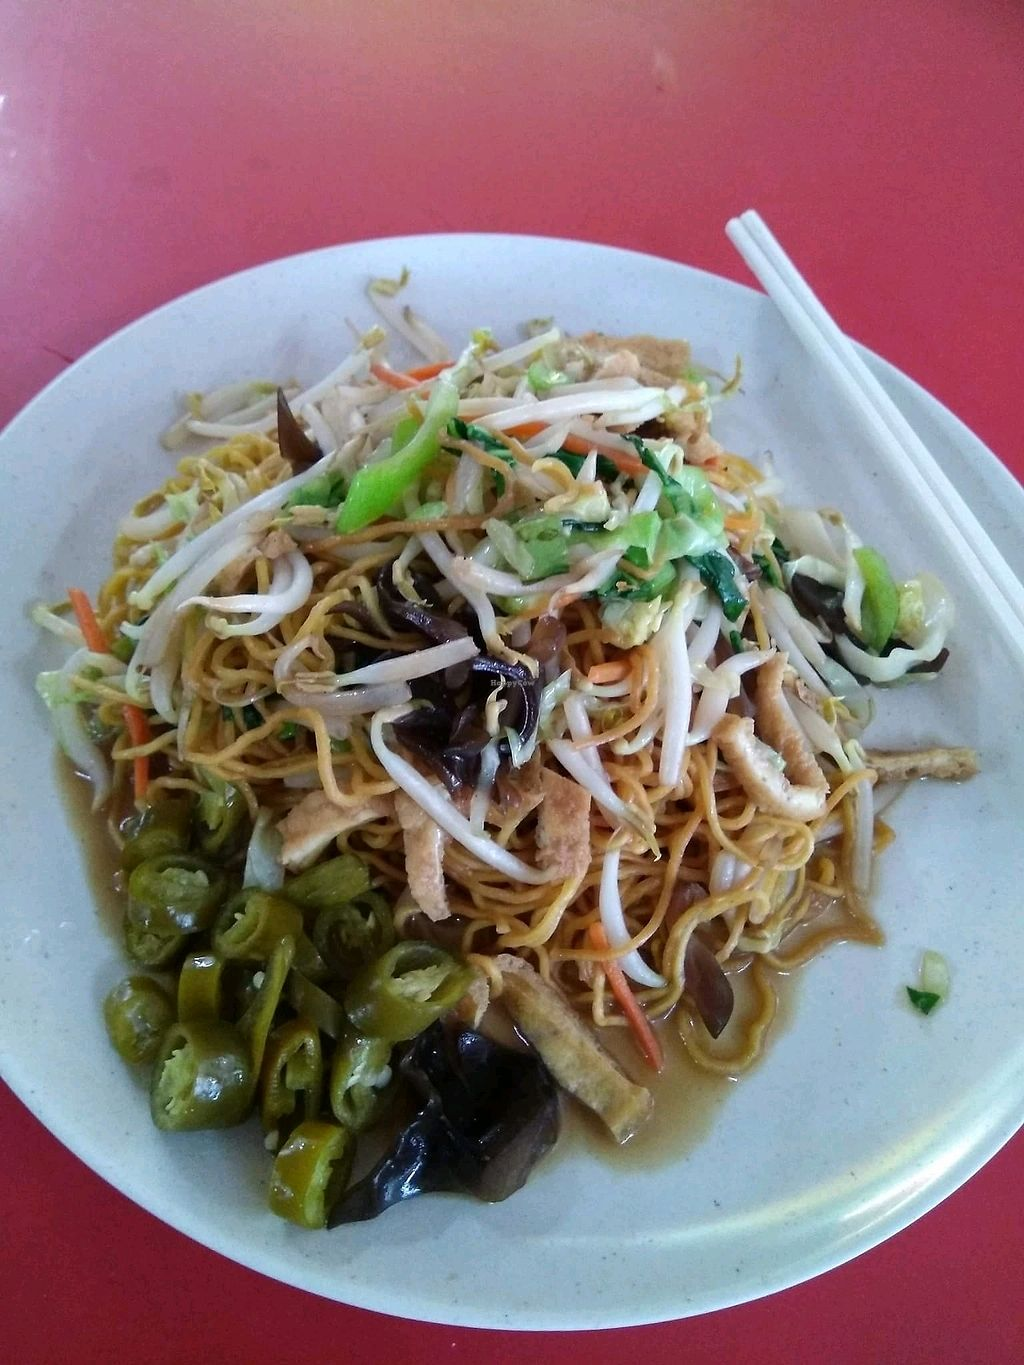 "Photo of Travelers Palm Vegetarian  by <a href=""/members/profile/AdelOng"">AdelOng</a> <br/>Delicious Hongkong Mee  <br/> April 10, 2018  - <a href='/contact/abuse/image/19651/383137'>Report</a>"